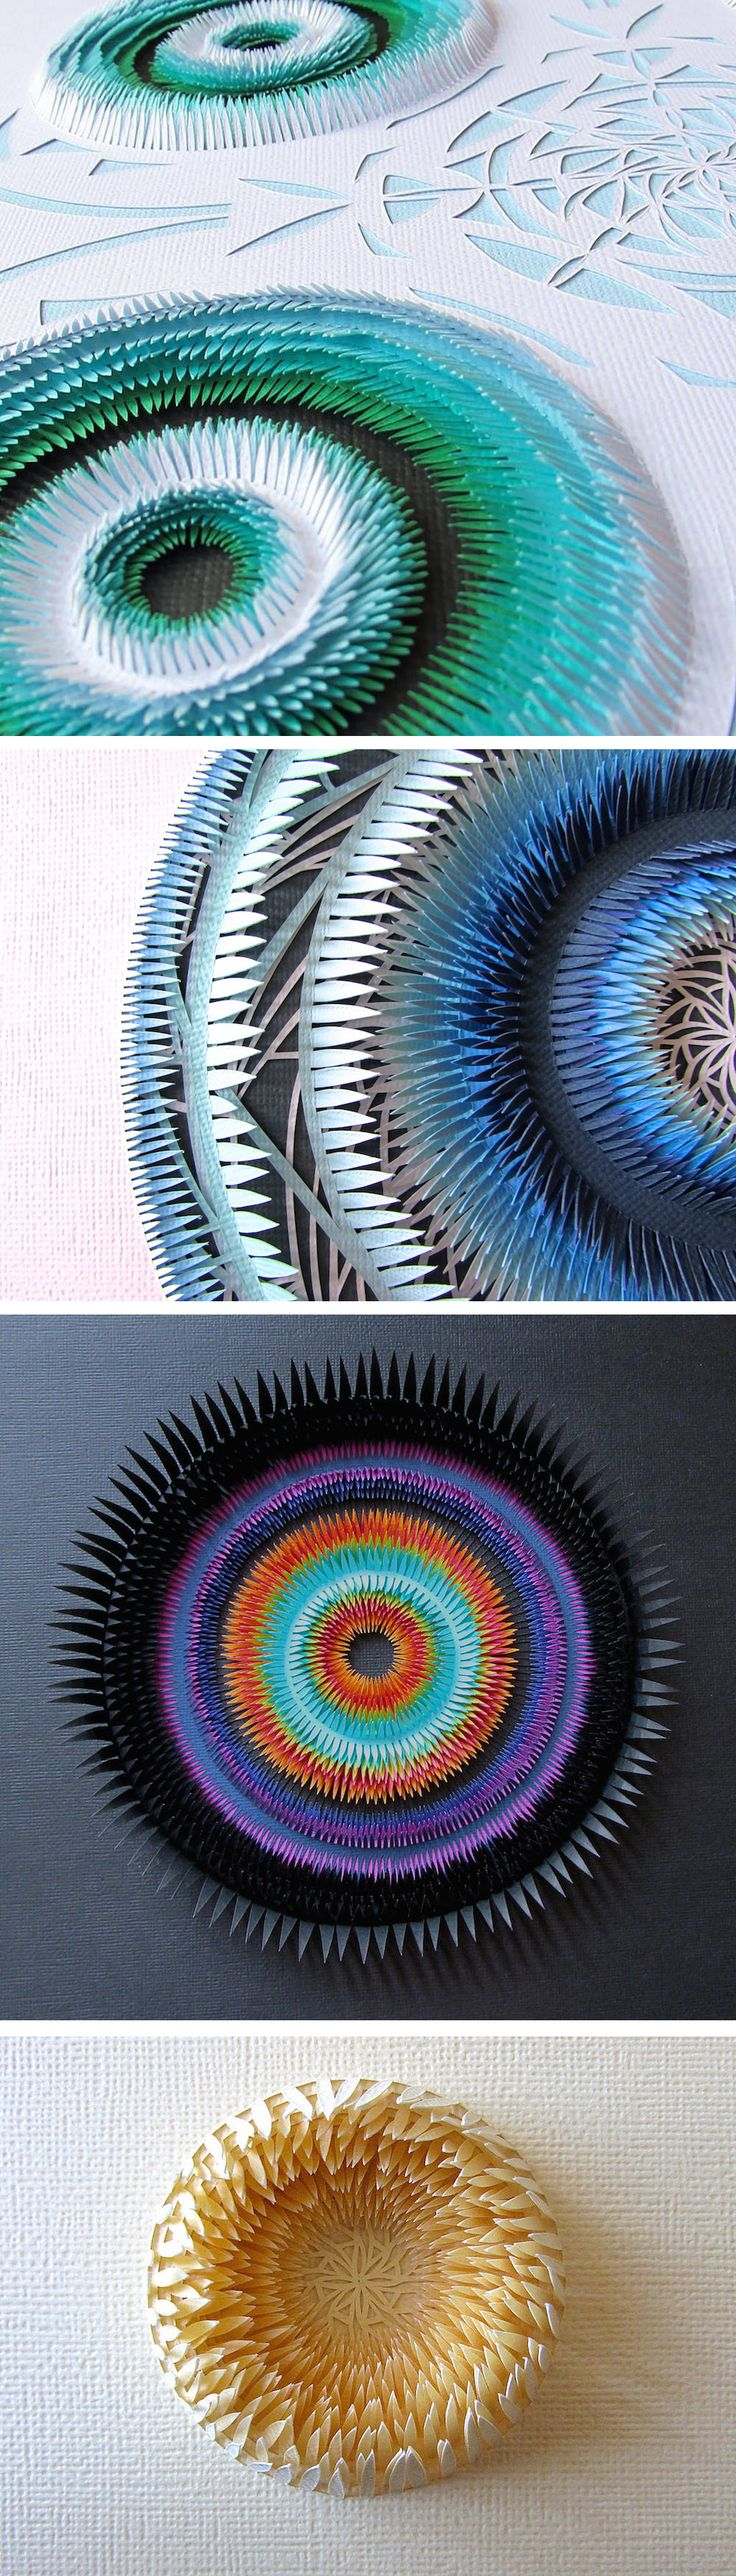 Explosive Cut Paper Sculptures by Clare Pentlow